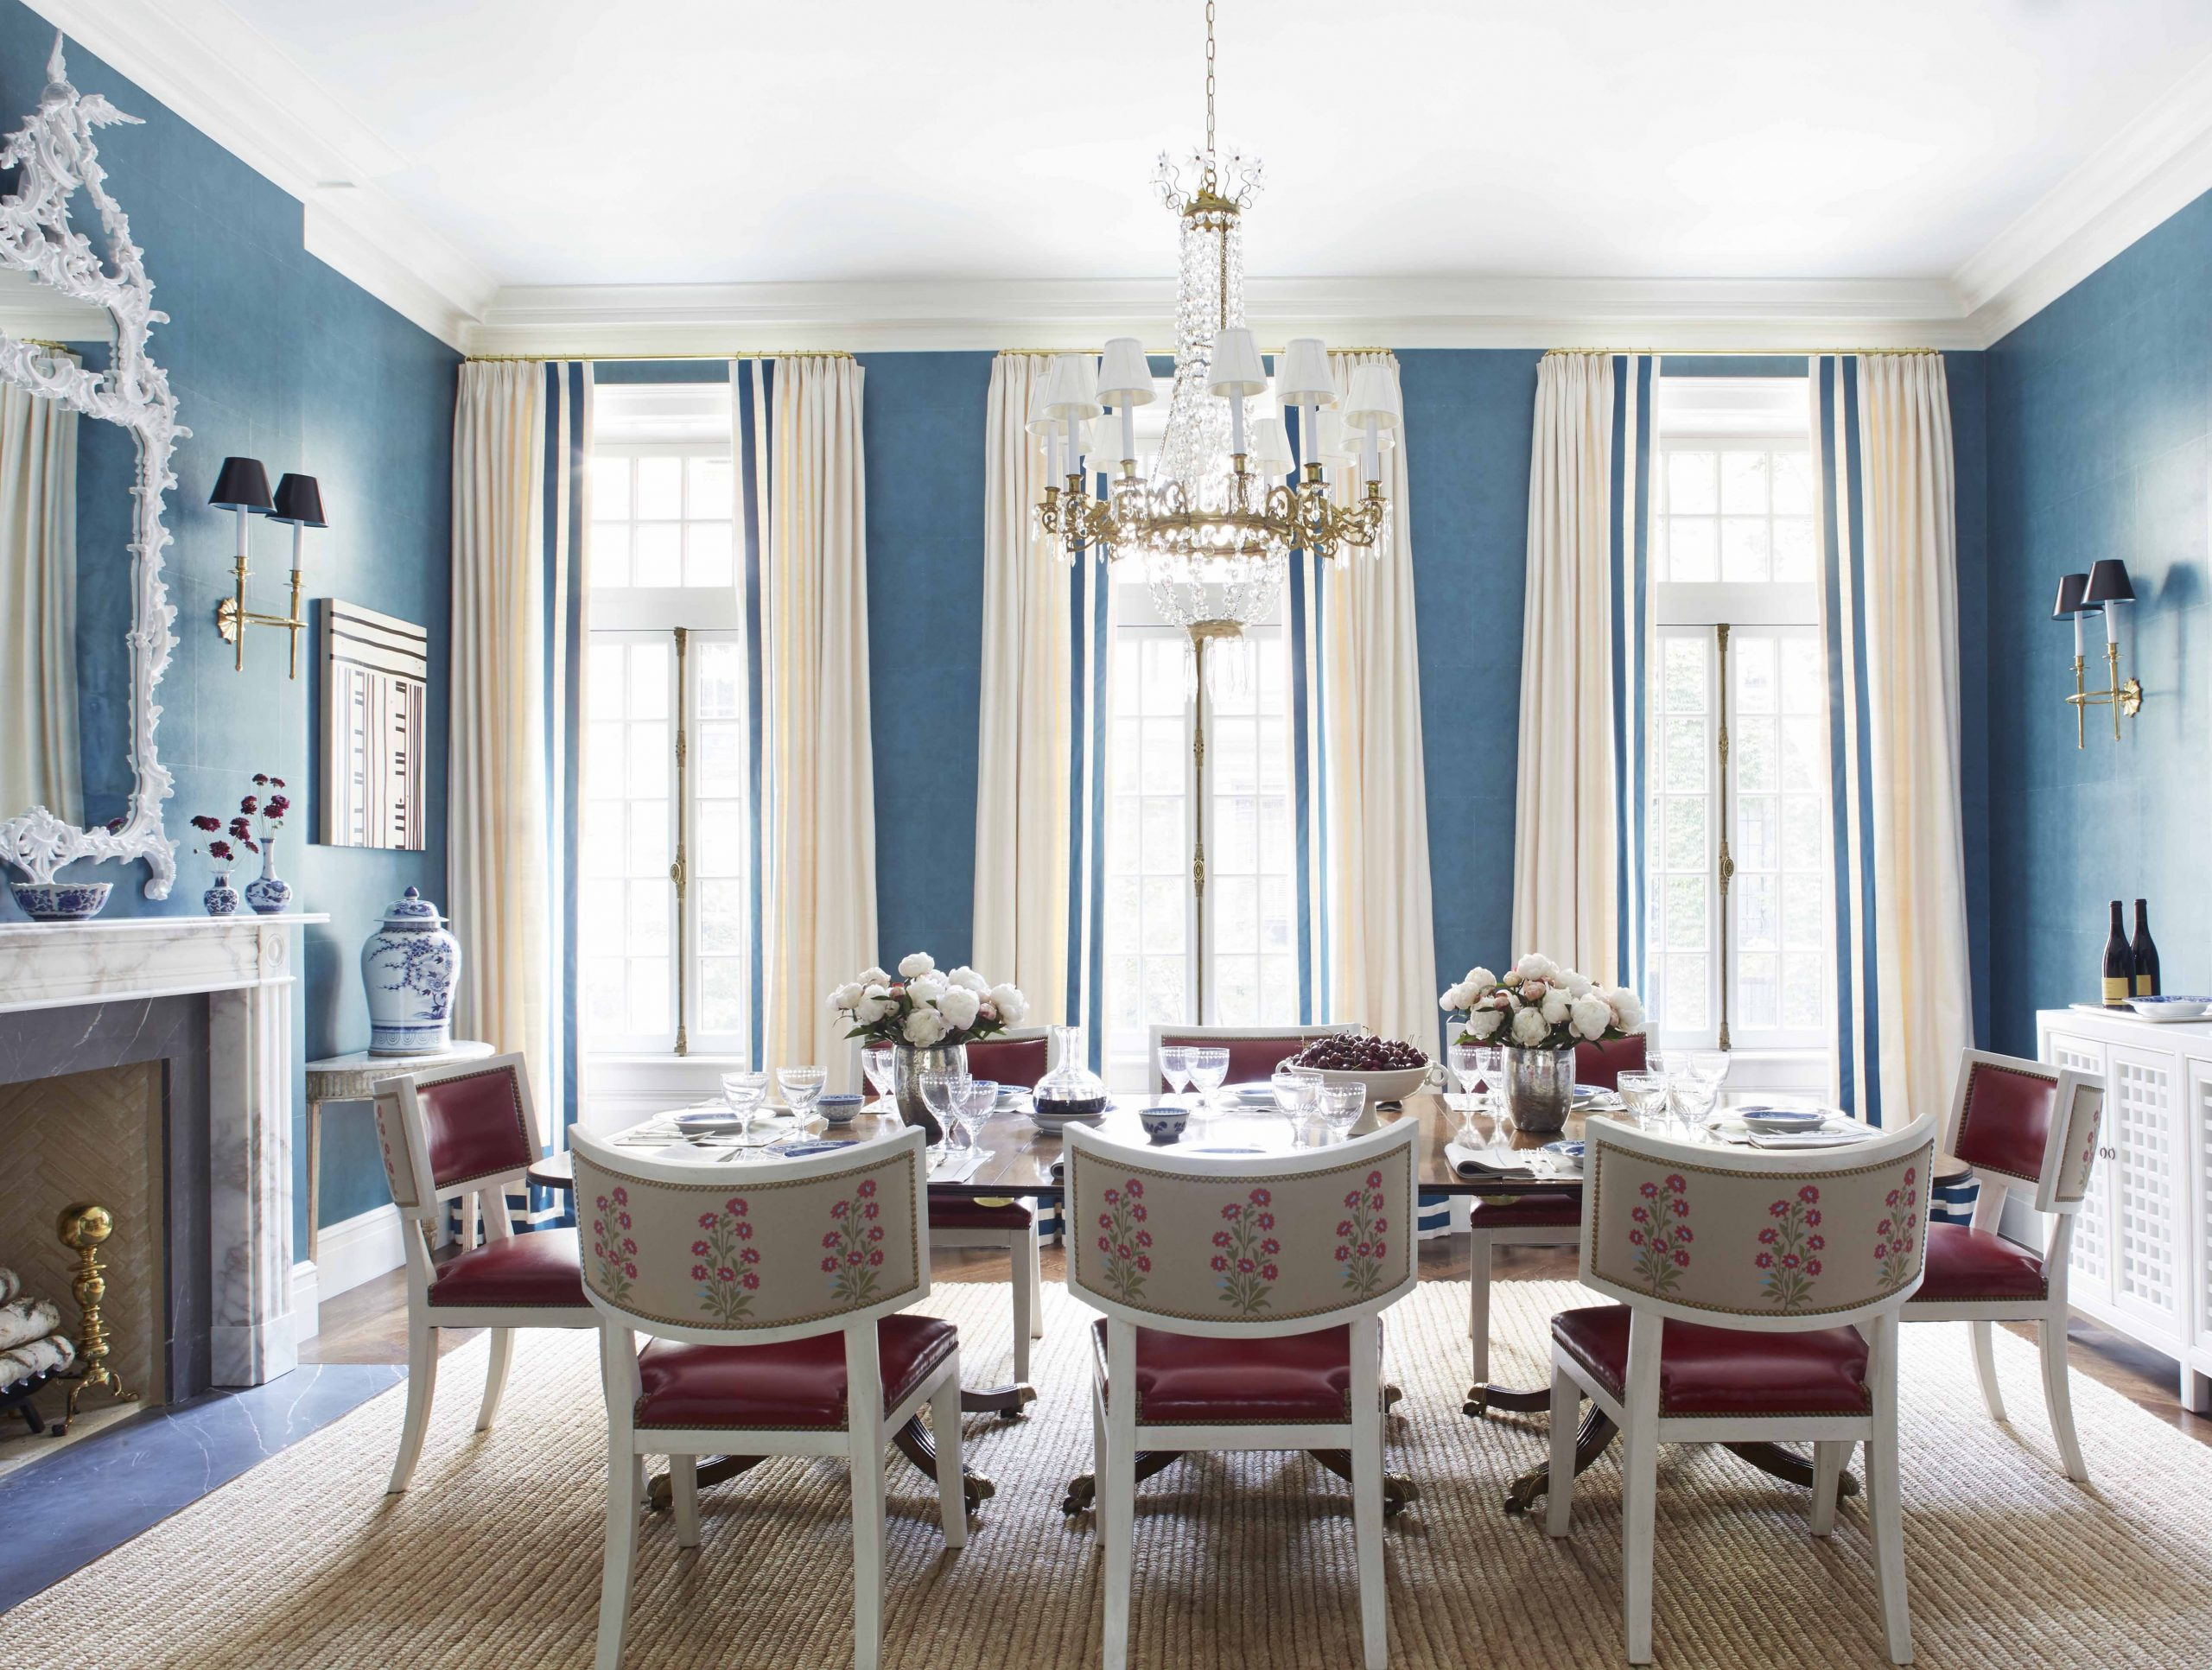 10 Best Dining Room Paint Colors - Color Schemes for Dining Rooms - Dining Room Ideas Blue Walls